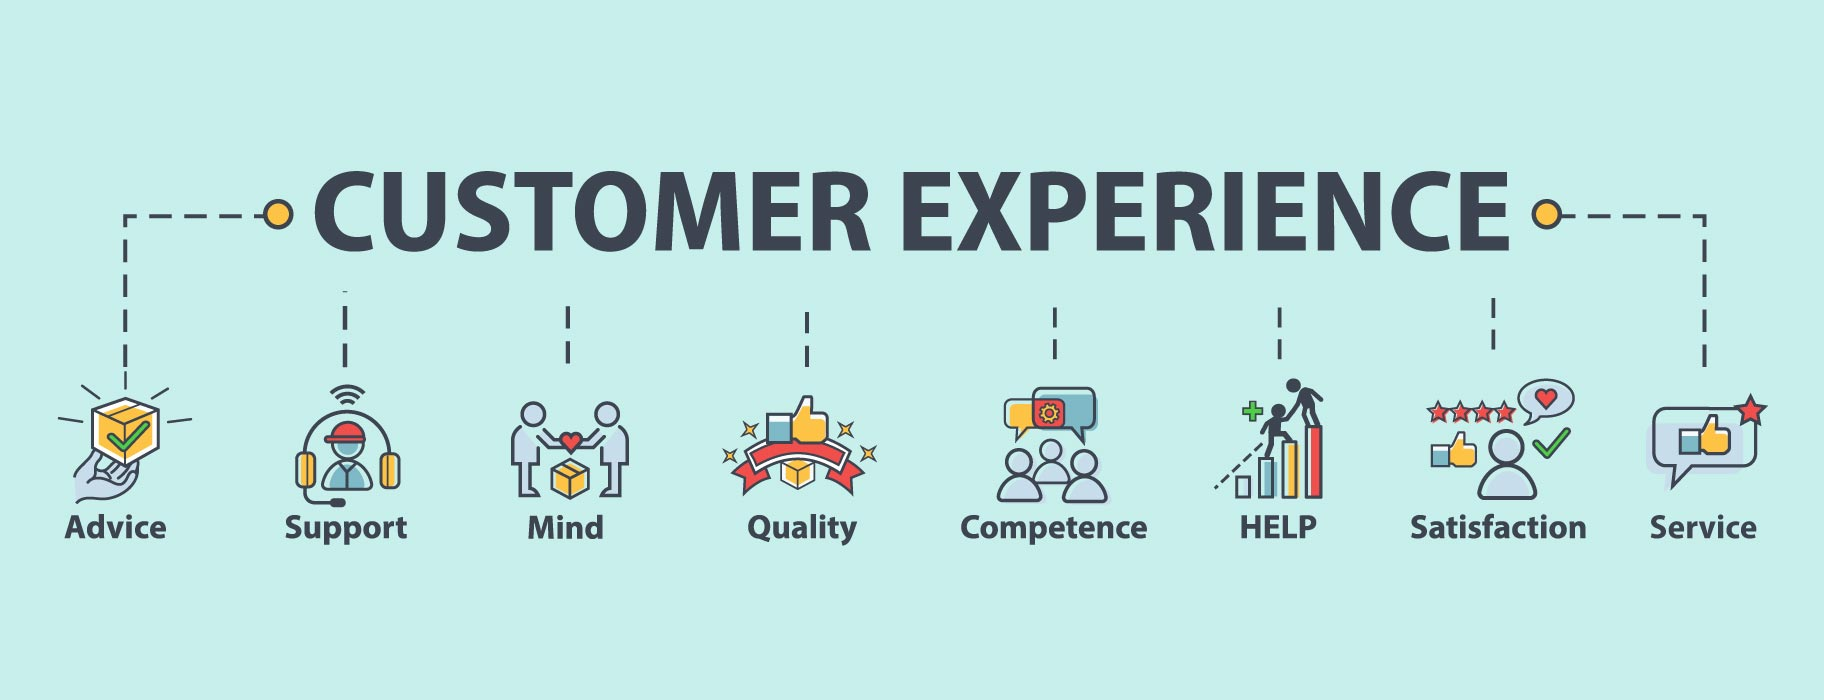 Customer Experience: Reading What Your Customers Want